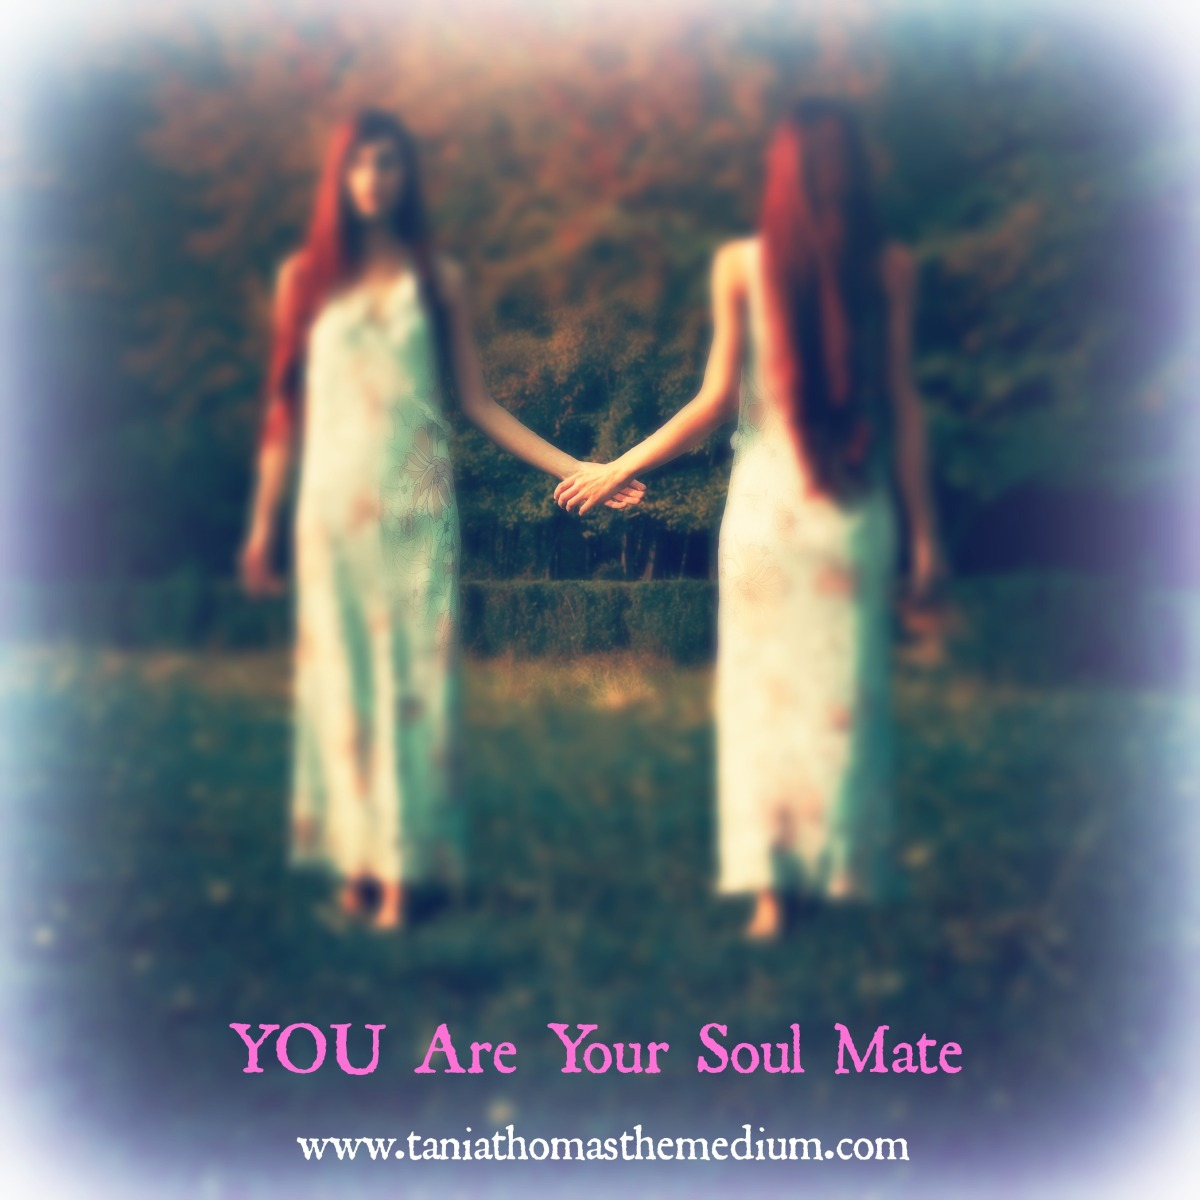 You Are Your Soul Mate